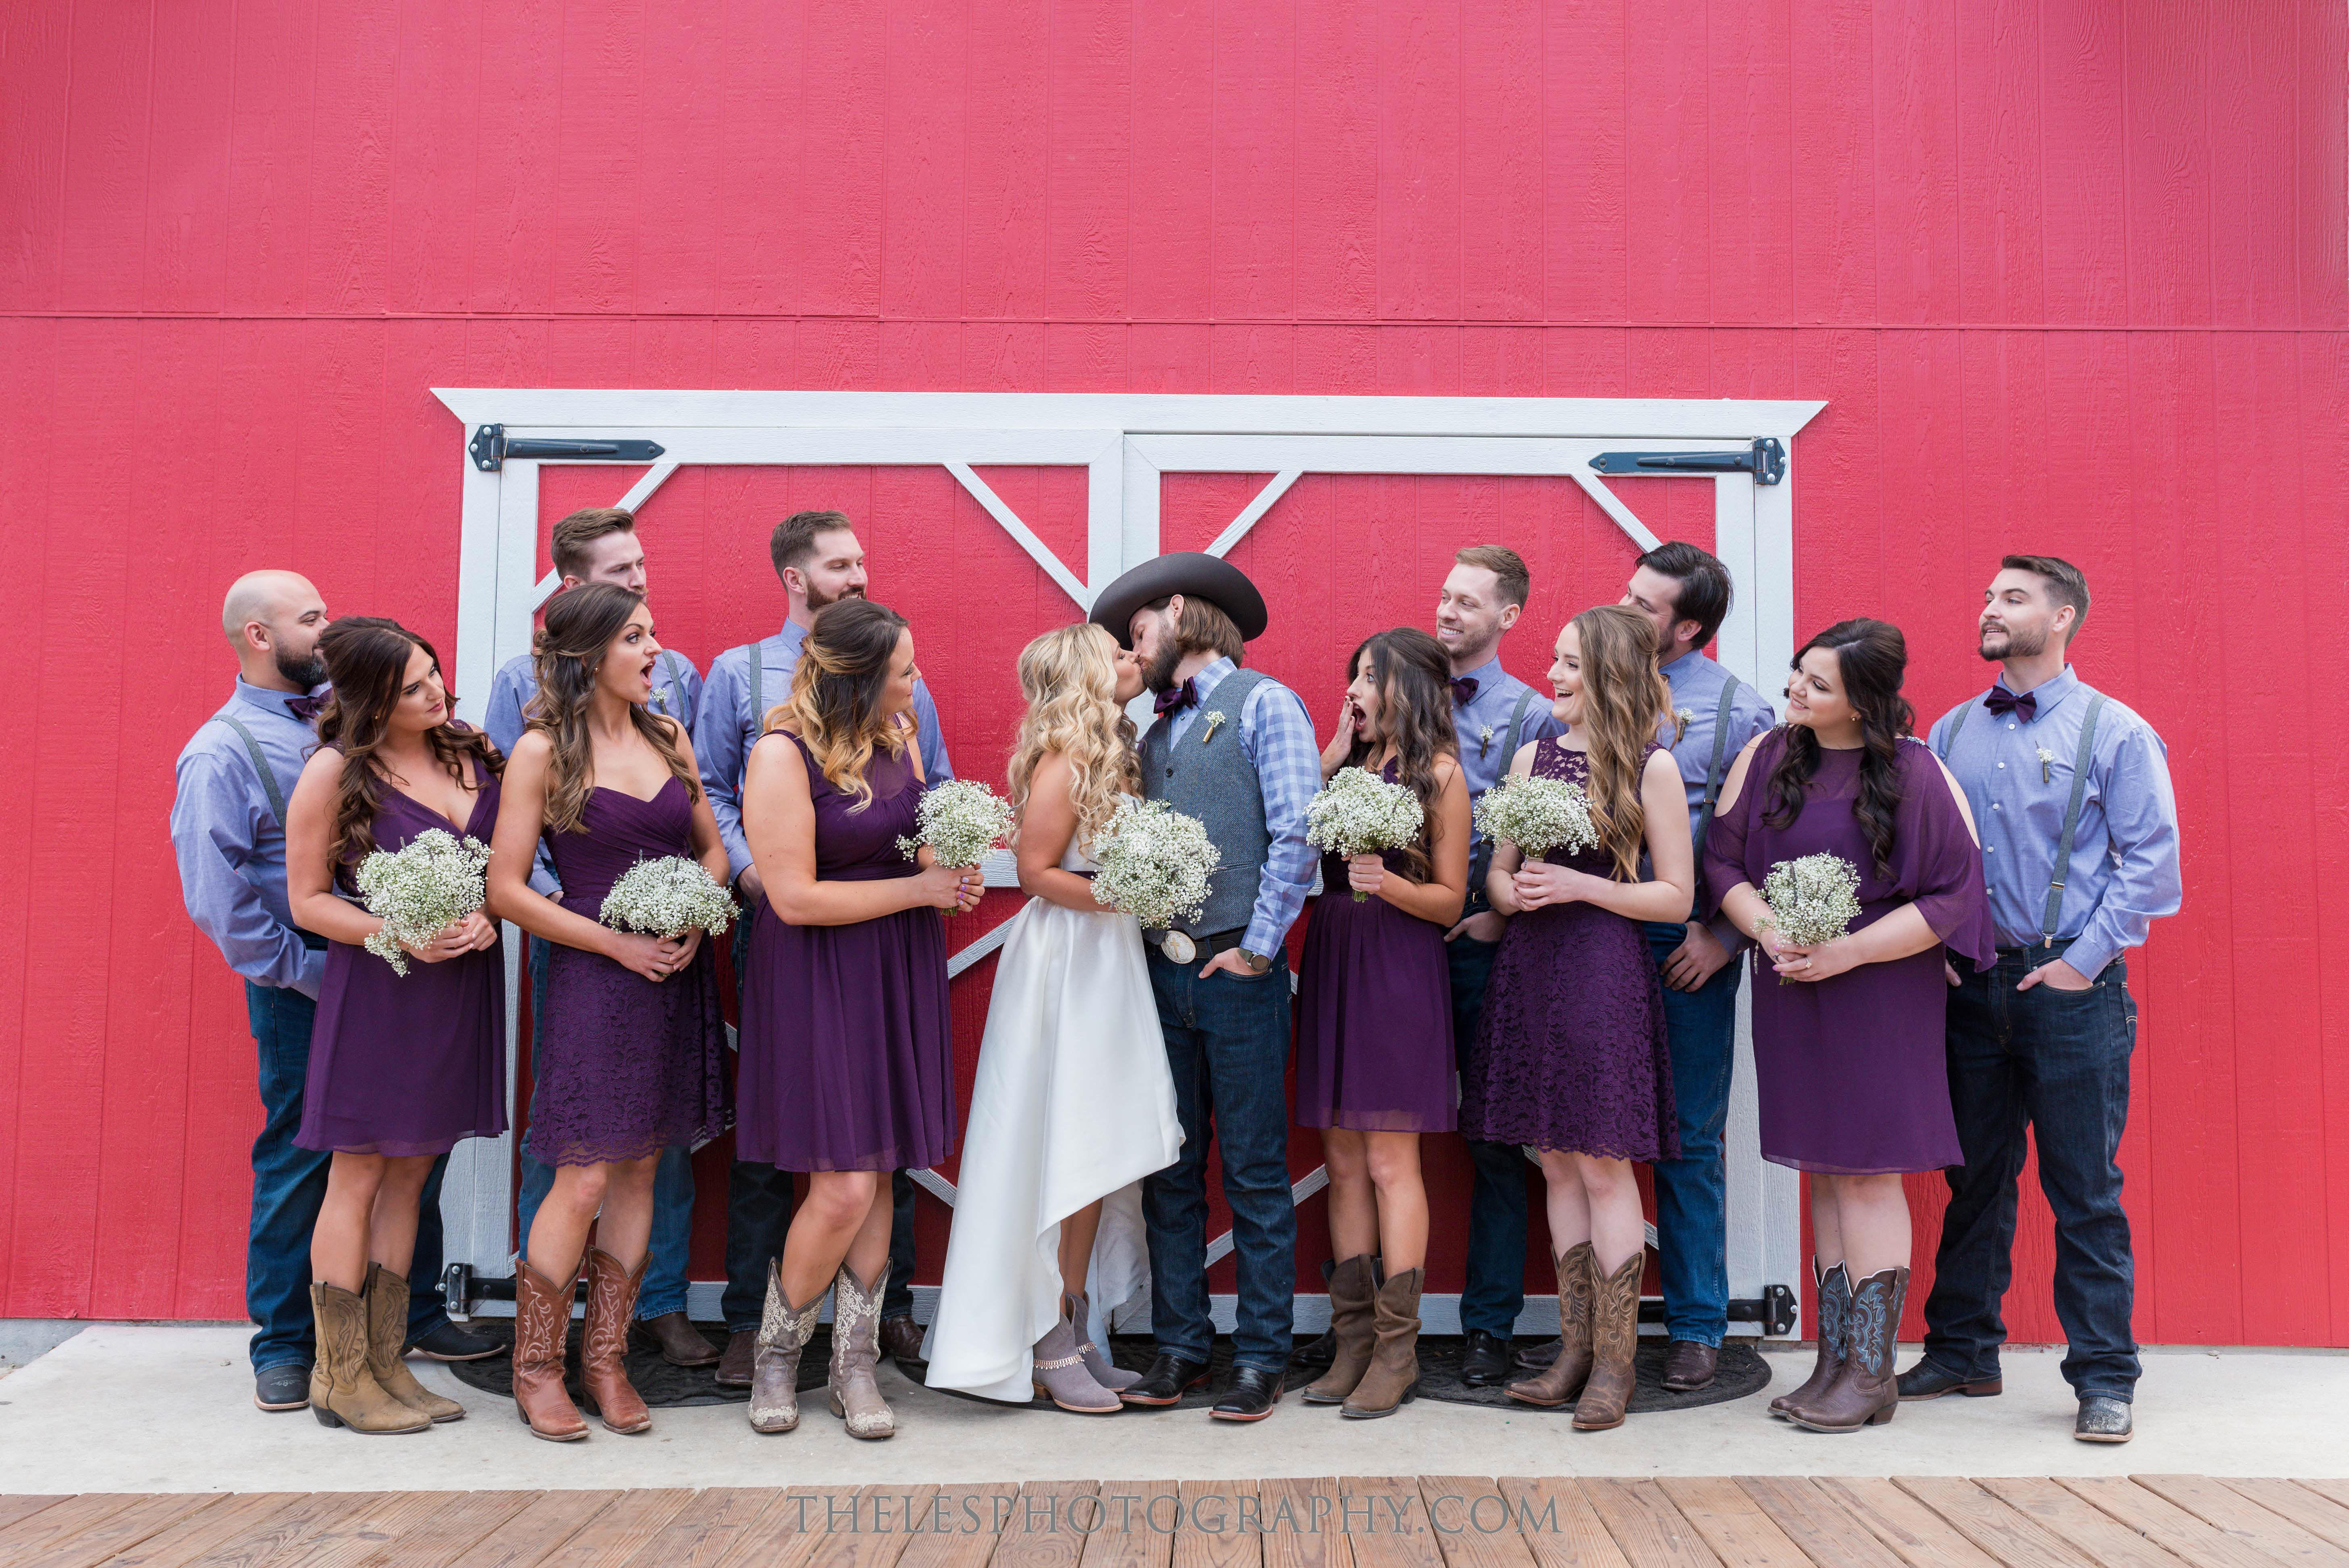 050 Dallas Wedding Photography - Photographer - The Les Photography - Fort Country Memories Wedding